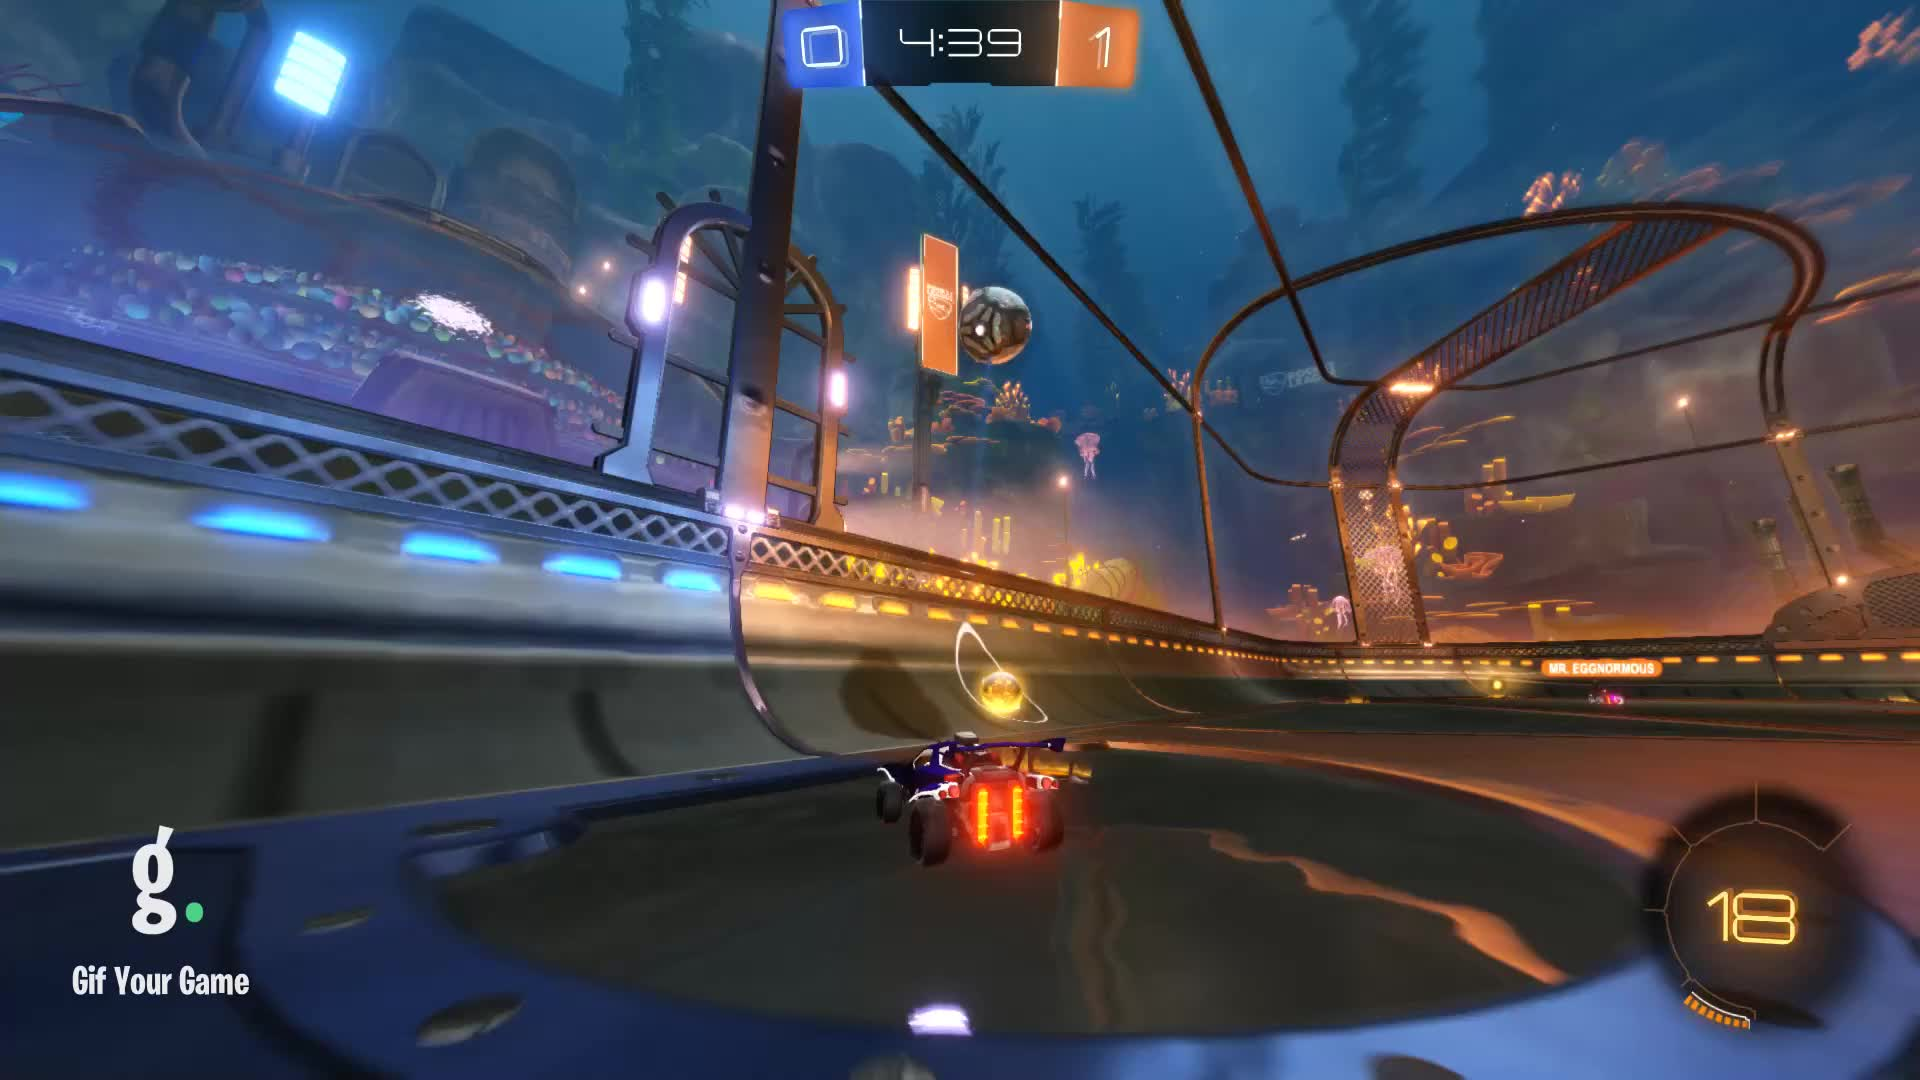 Gif Your Game, GifYourGame, Goal, Rocket League, RocketLeague, mast3r, Goal 2: mast3r GIFs